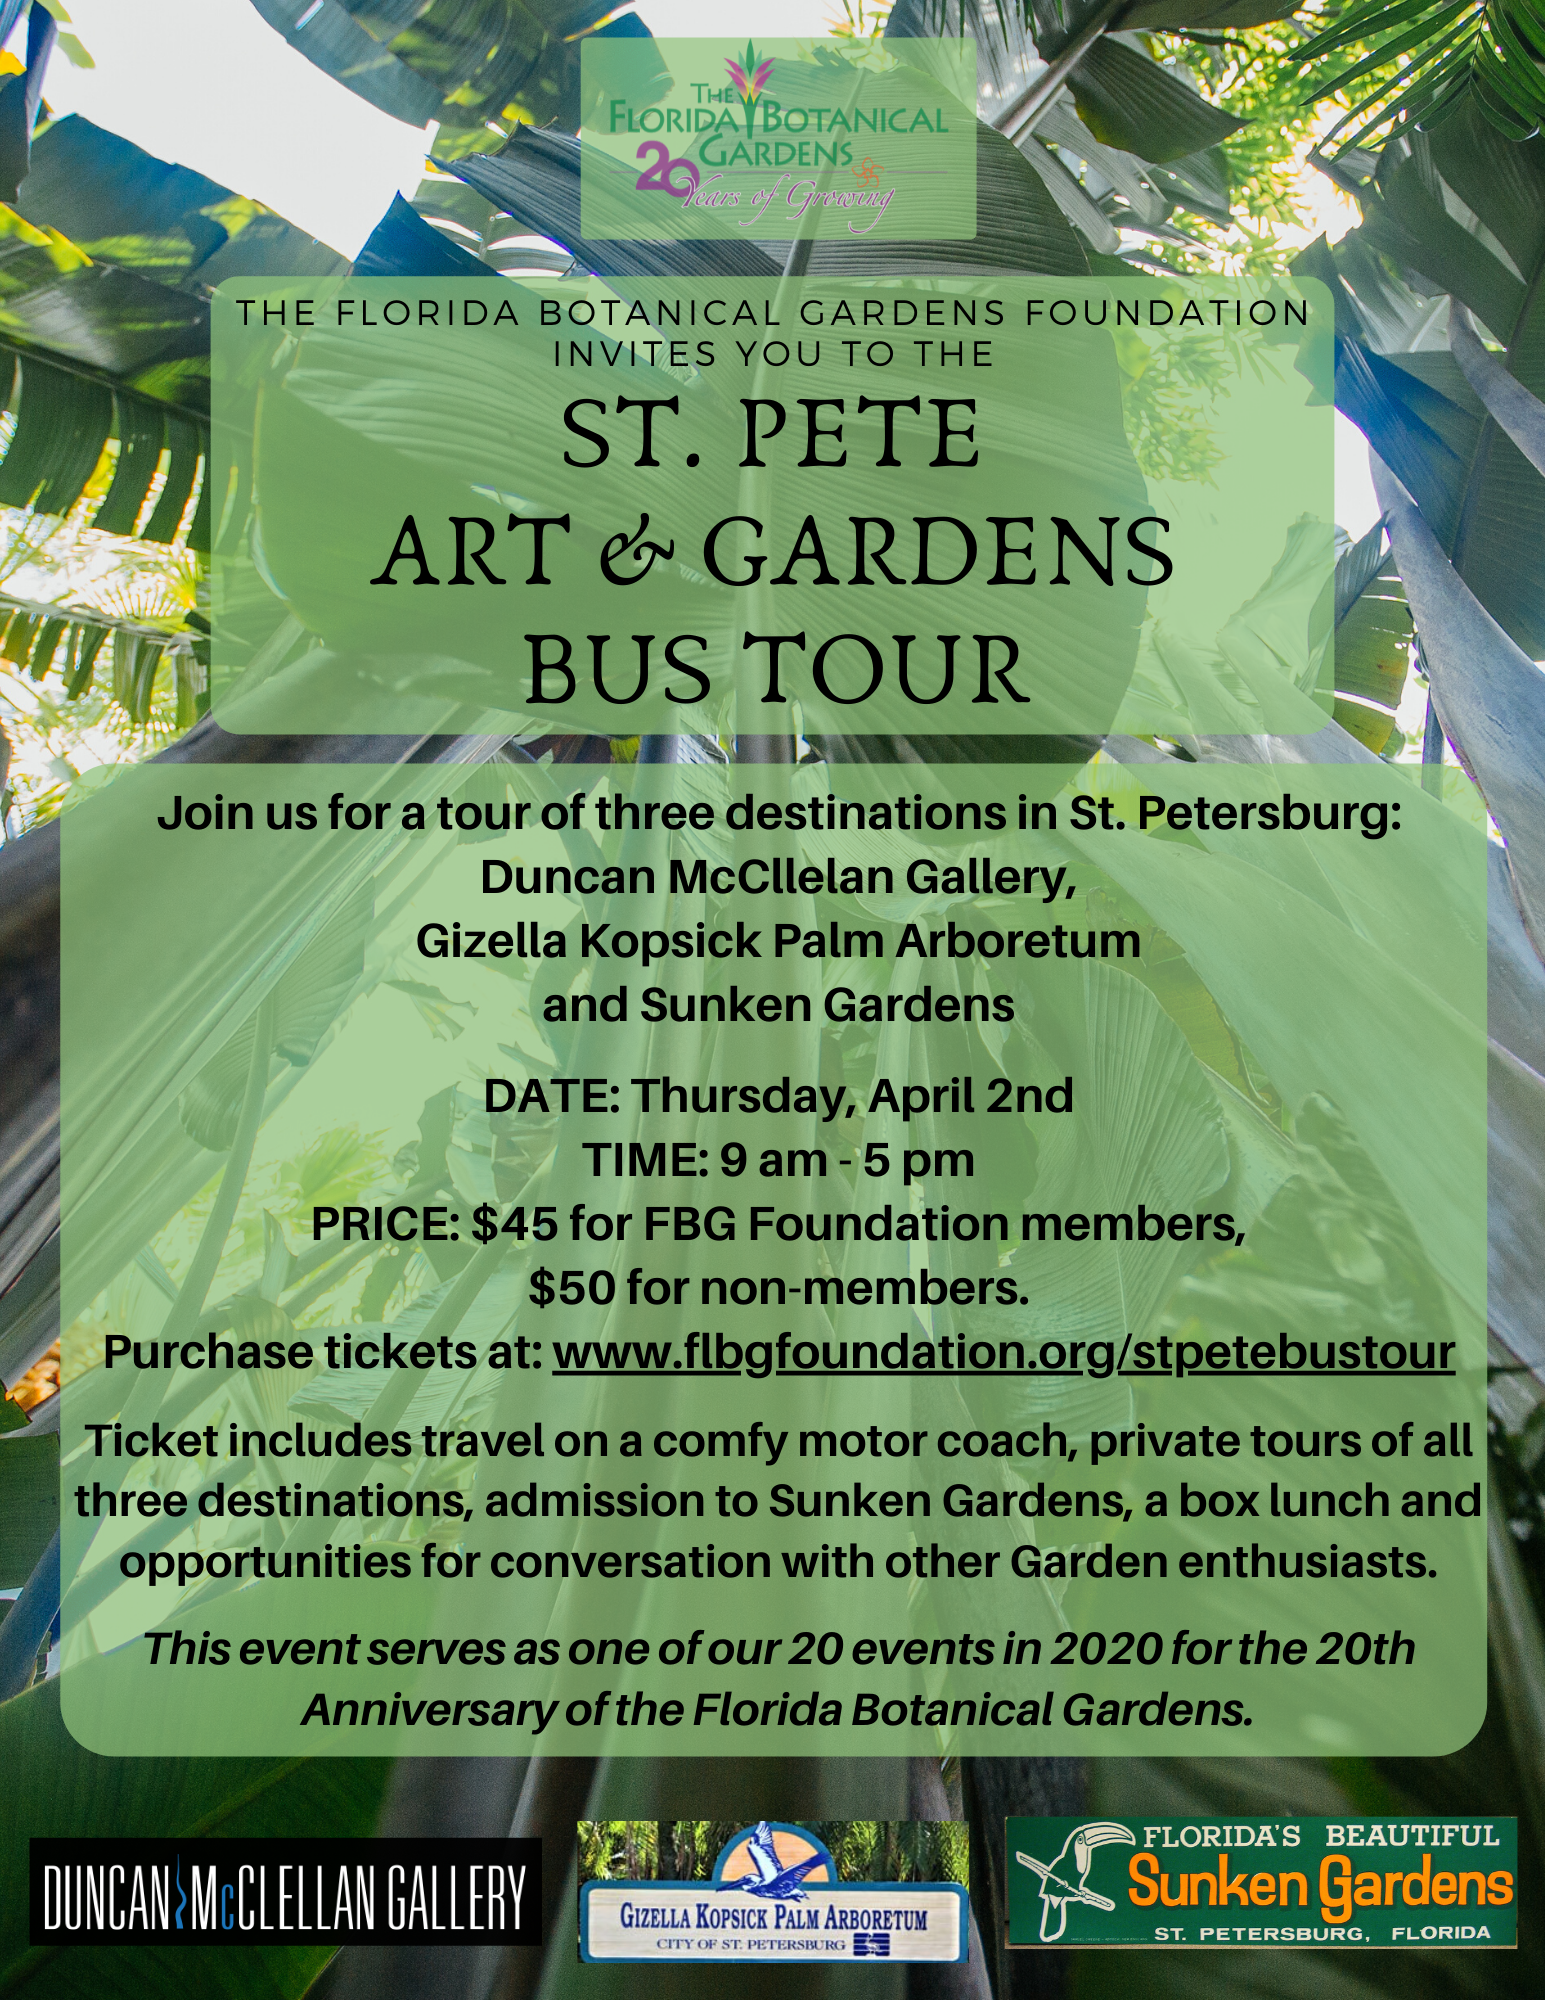 The Florida Botanical Gardens Foundation invites you to the St. Pete Art & Gardens Bus Tour!  Join us for a tour of three destinations in St. Petersburg: Duncan McCllelan Gallery, Gizella Kopsick Palm Arboretum and Sunken Gardens.  DATE: Thursday, April 2nd TIME: 9 am - 5 pm PRICE: $45 for FBG Foundation members, $50 for non-members. Purchase tickets at: www.flbgfoundation.org/stpetebustour.  Ticket includes travel on a comfy motor coach, private tours of all three destinations, admission to Sunken Gardens, a box lunch and opportunities for conversation with other Garden enthusiasts.  This event serves as one of our 20 events in 2020 for the 20th Anniversary of the Florida Botanical Gardens.